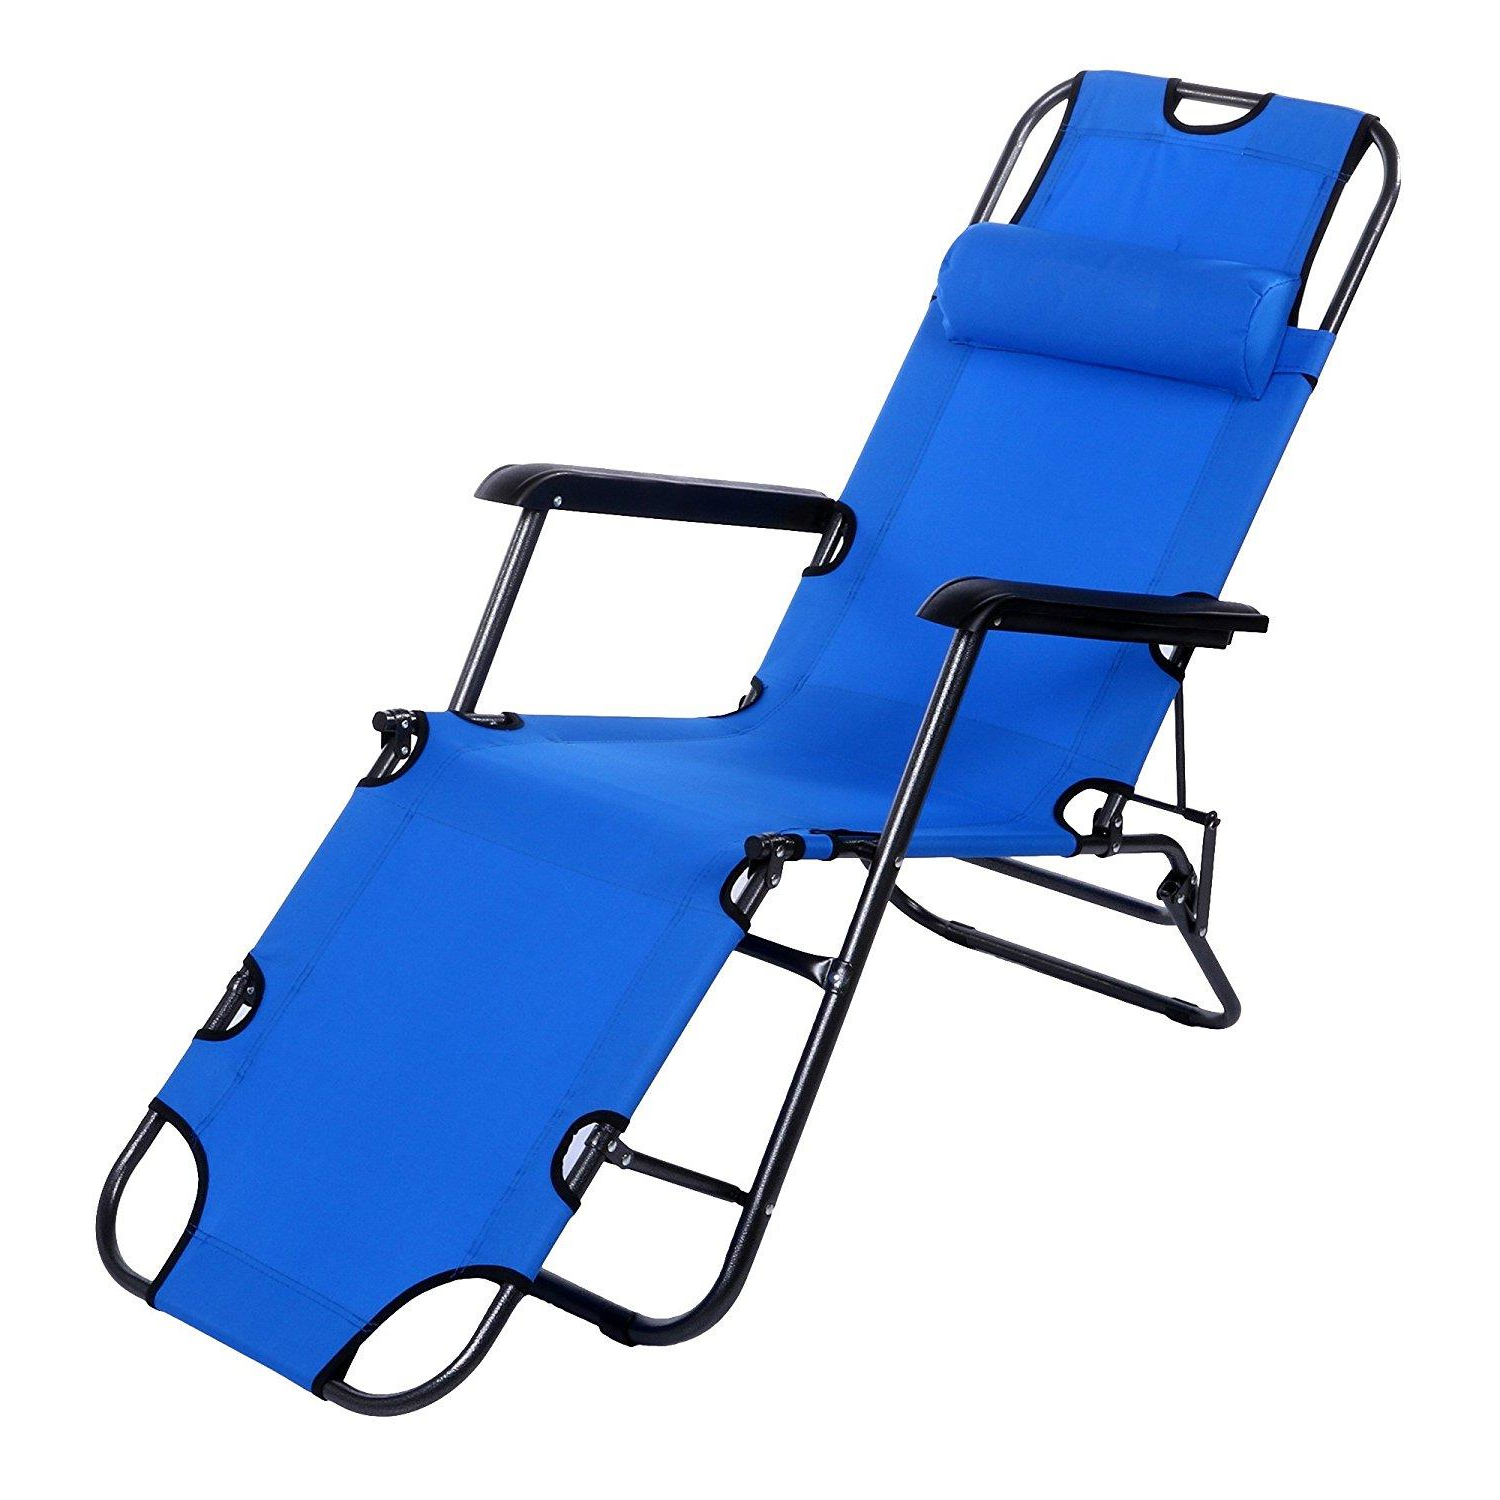 Portable Reclining Beach Chaise Lounge Folding Chairs Regarding Best And Newest Ktaxon Outdoor Folding Lounge Chaise Portable Beach Recliner Patio Chair, Garden Camping Pool Yard Lawn Recliner Portable Beach Pool Chair With (Gallery 7 of 25)